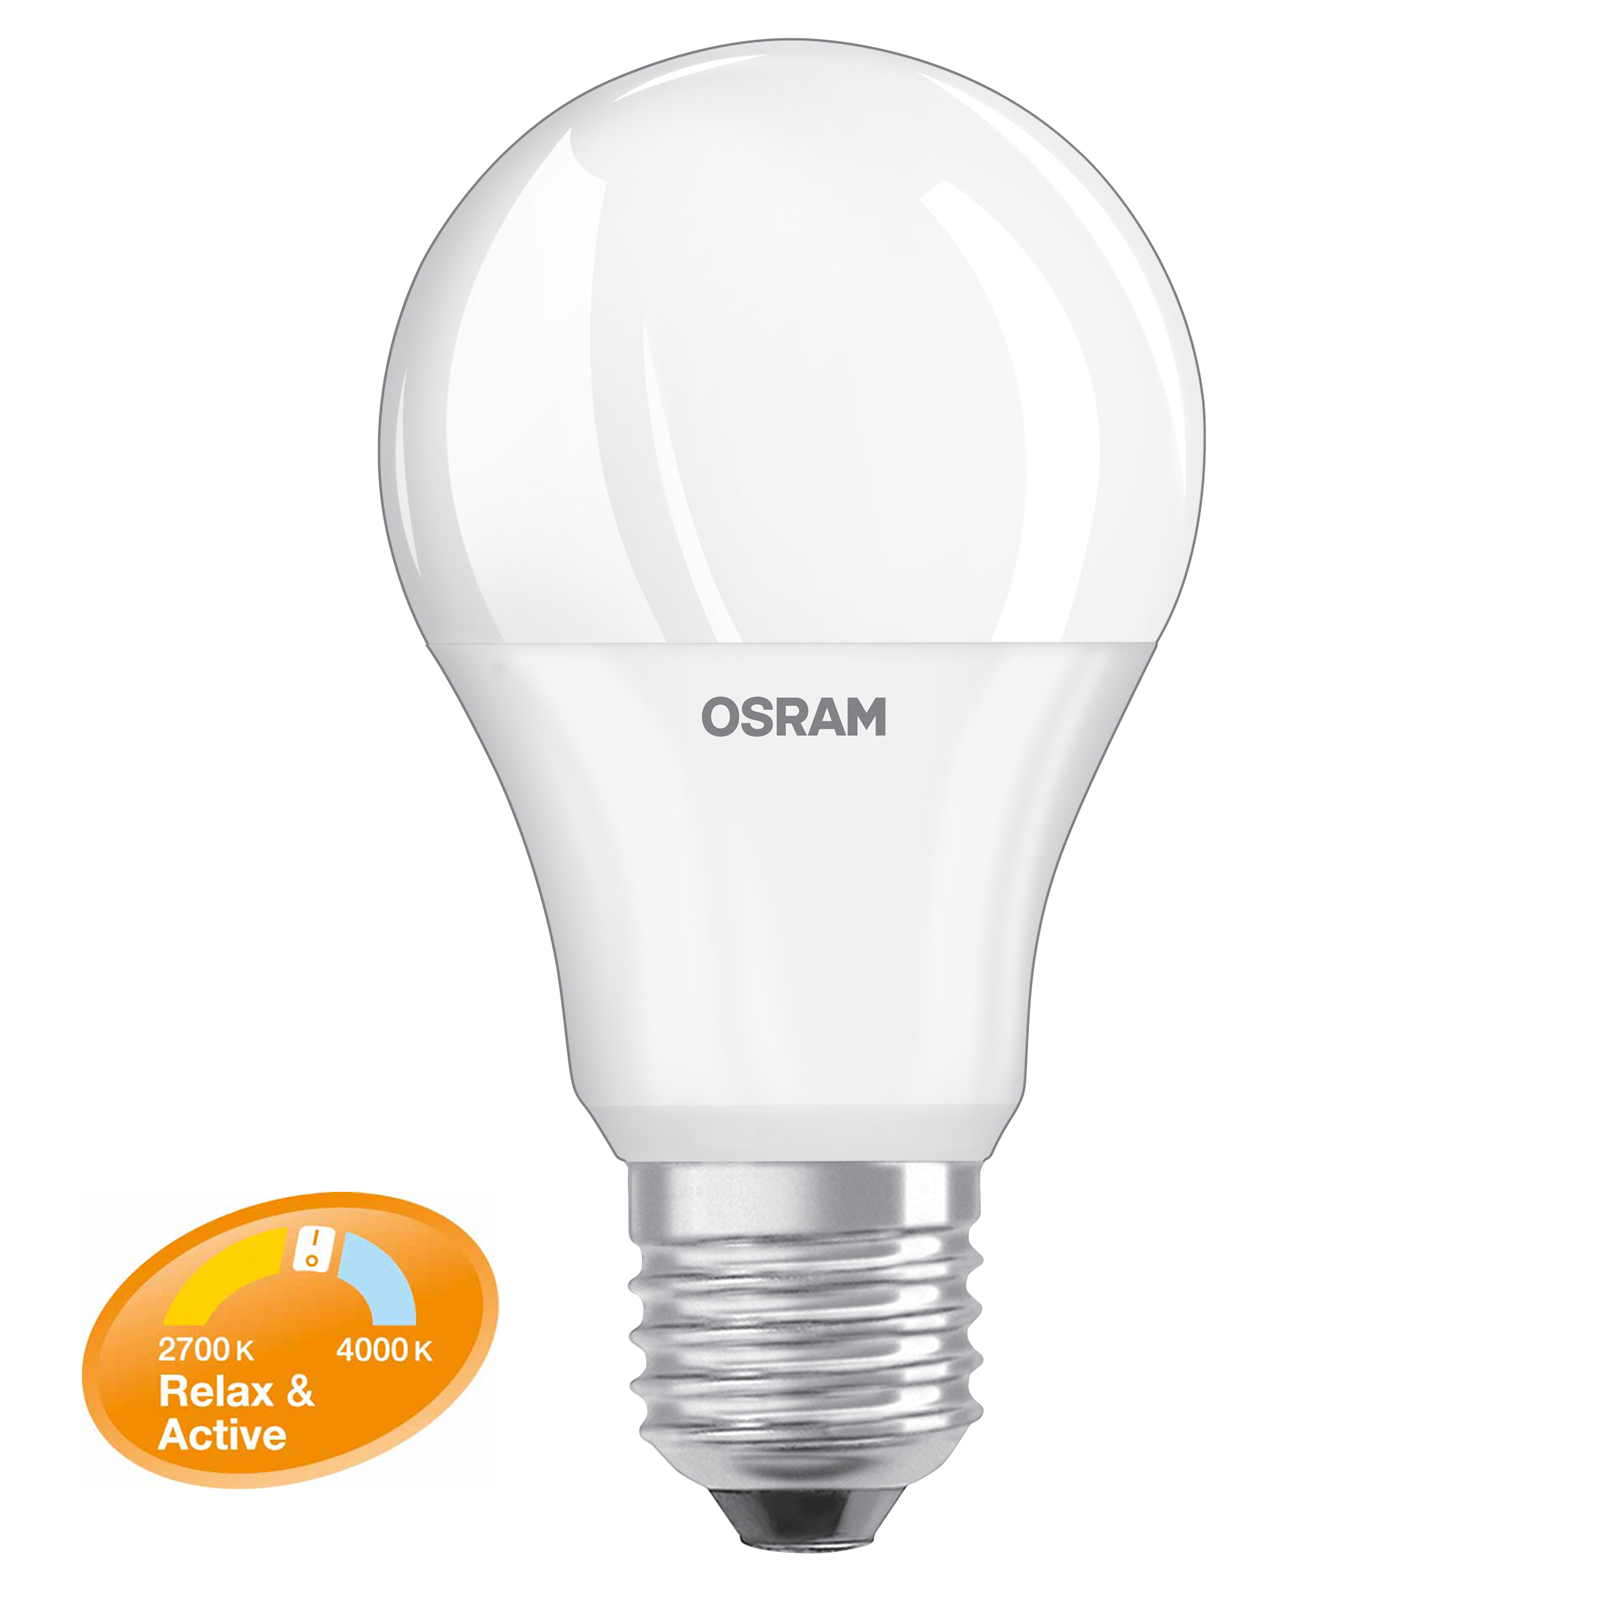 osram led relax active classic a 60 e27 8 watt wie 60 watt 806 lumen ebay. Black Bedroom Furniture Sets. Home Design Ideas